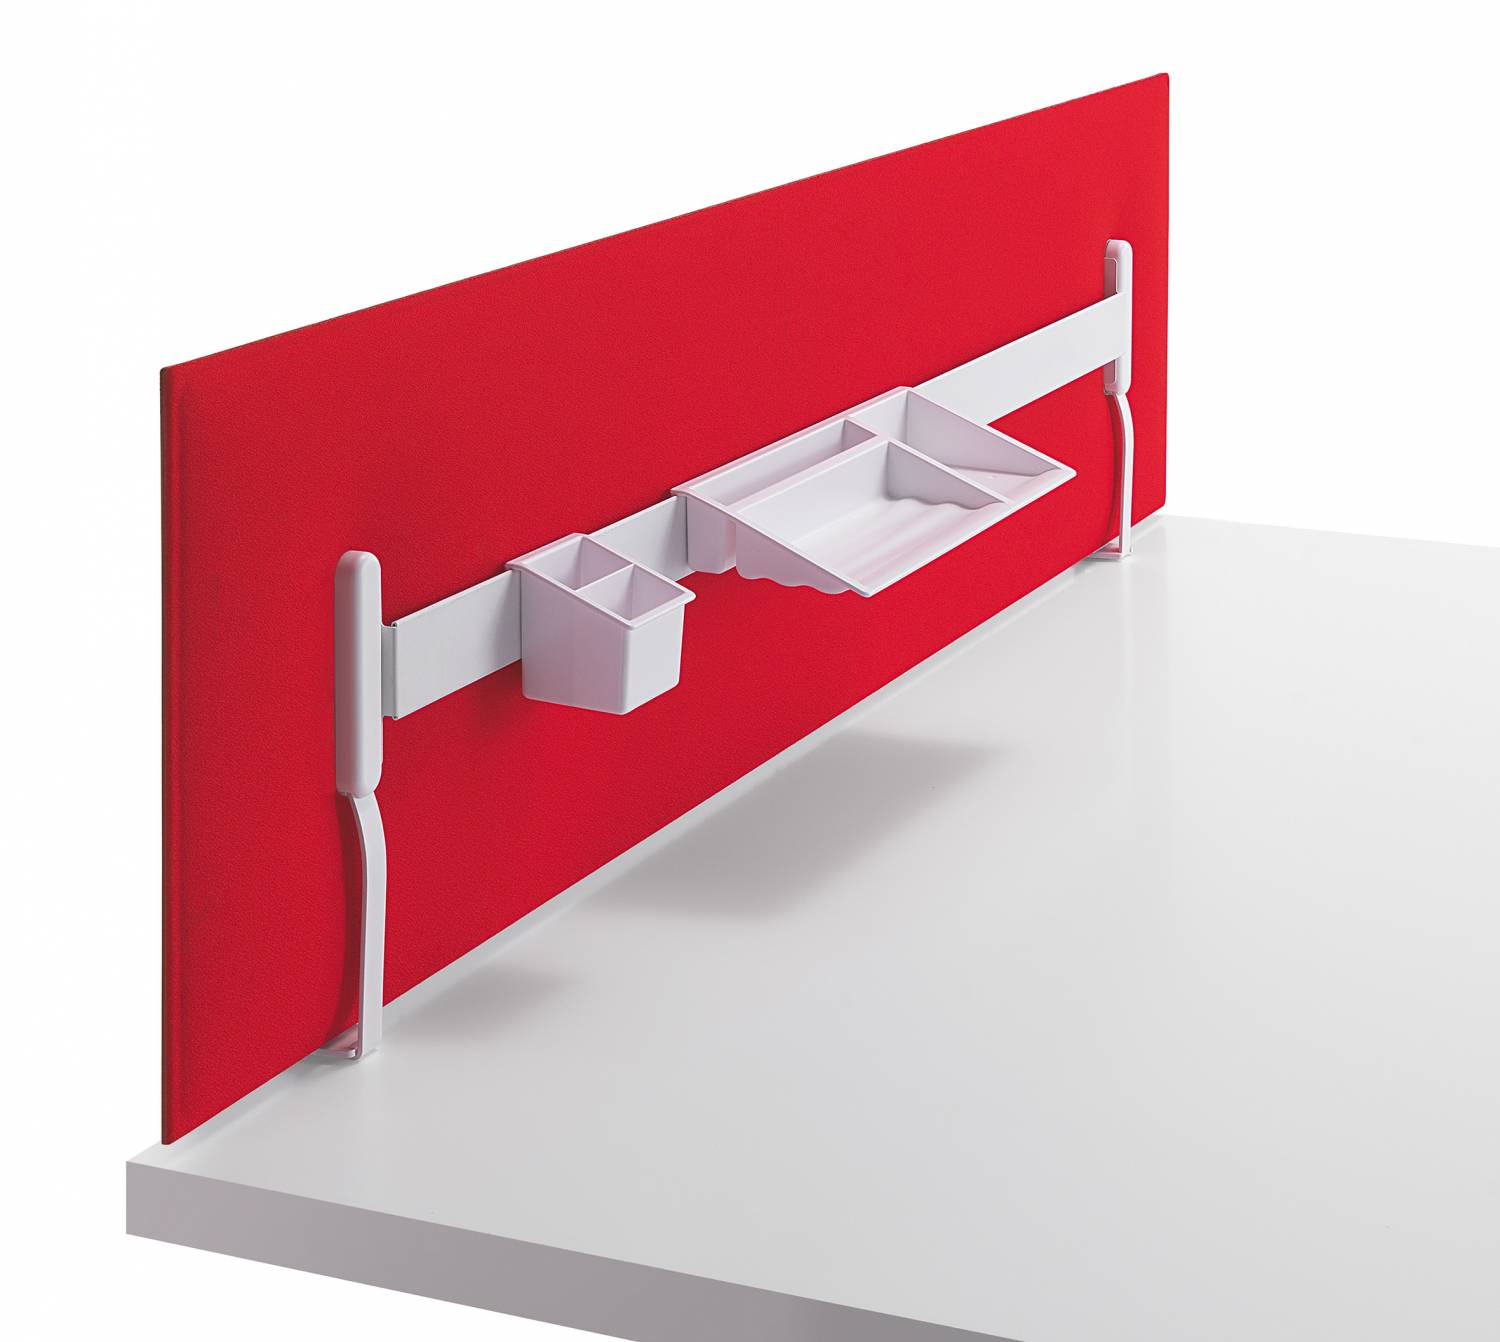 privy cubicle for on partitions shop desk walls dividers divider clamp